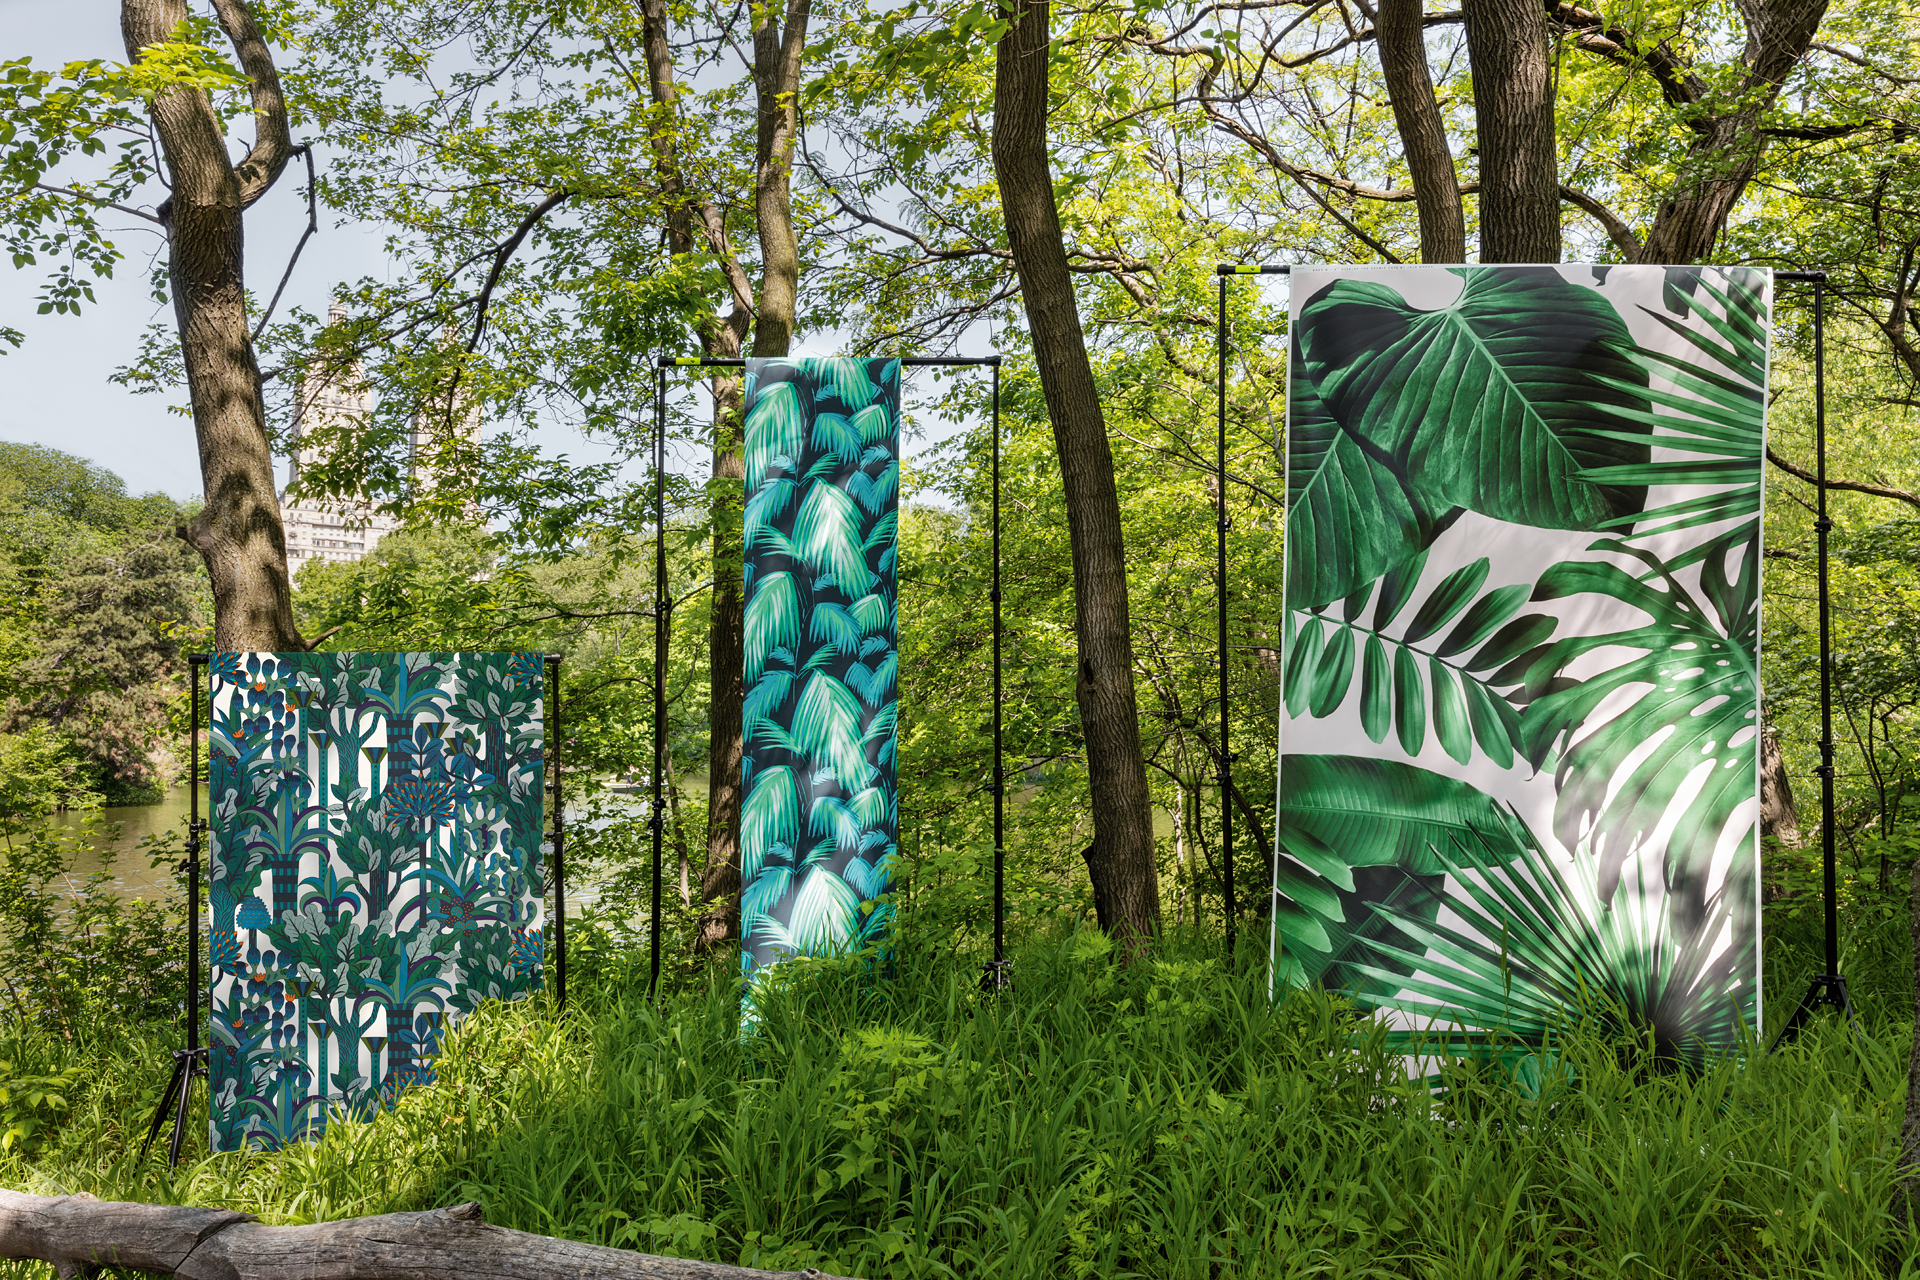 FROM LEFT TO RIGHT Hermes' Jardin d'Osier is a polished design of flowers, shrubs, plants, and fountains. The colors in Tropicana from Osborne & Little are sublimely glamorous. Flavor Paper's Wild Thing is a modern take on the classic aesthetic, with oversize leaves.